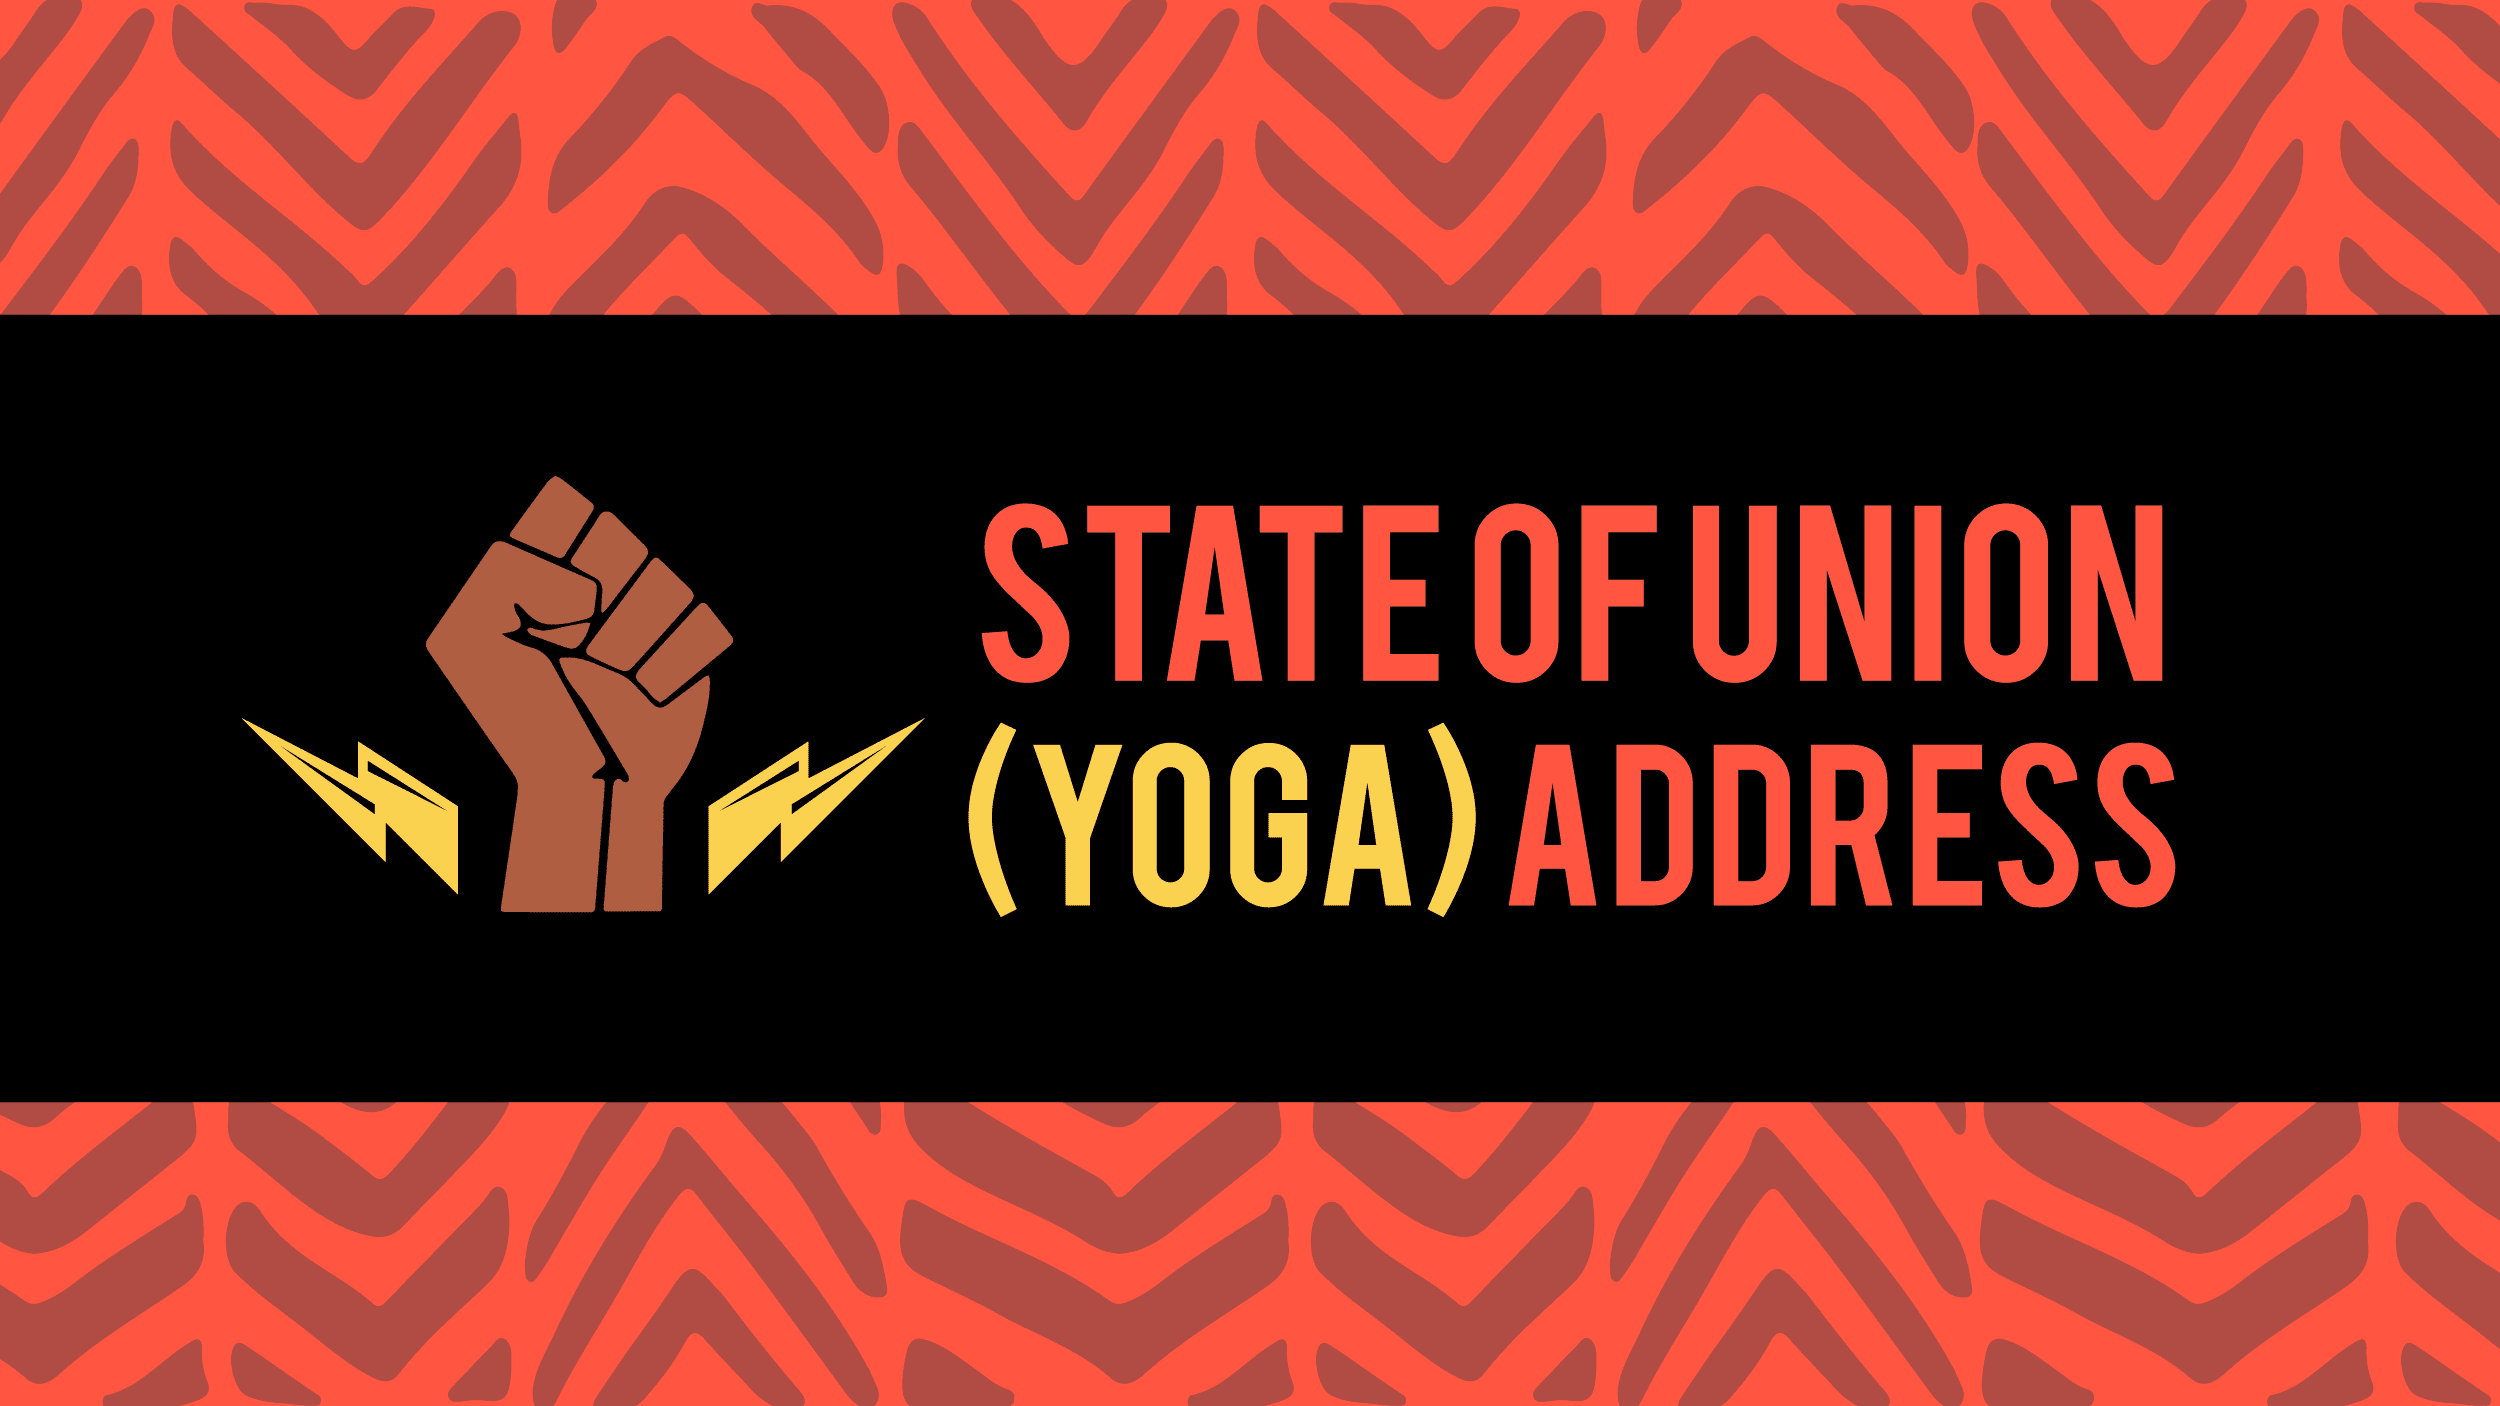 State of Union (Yoga) Address